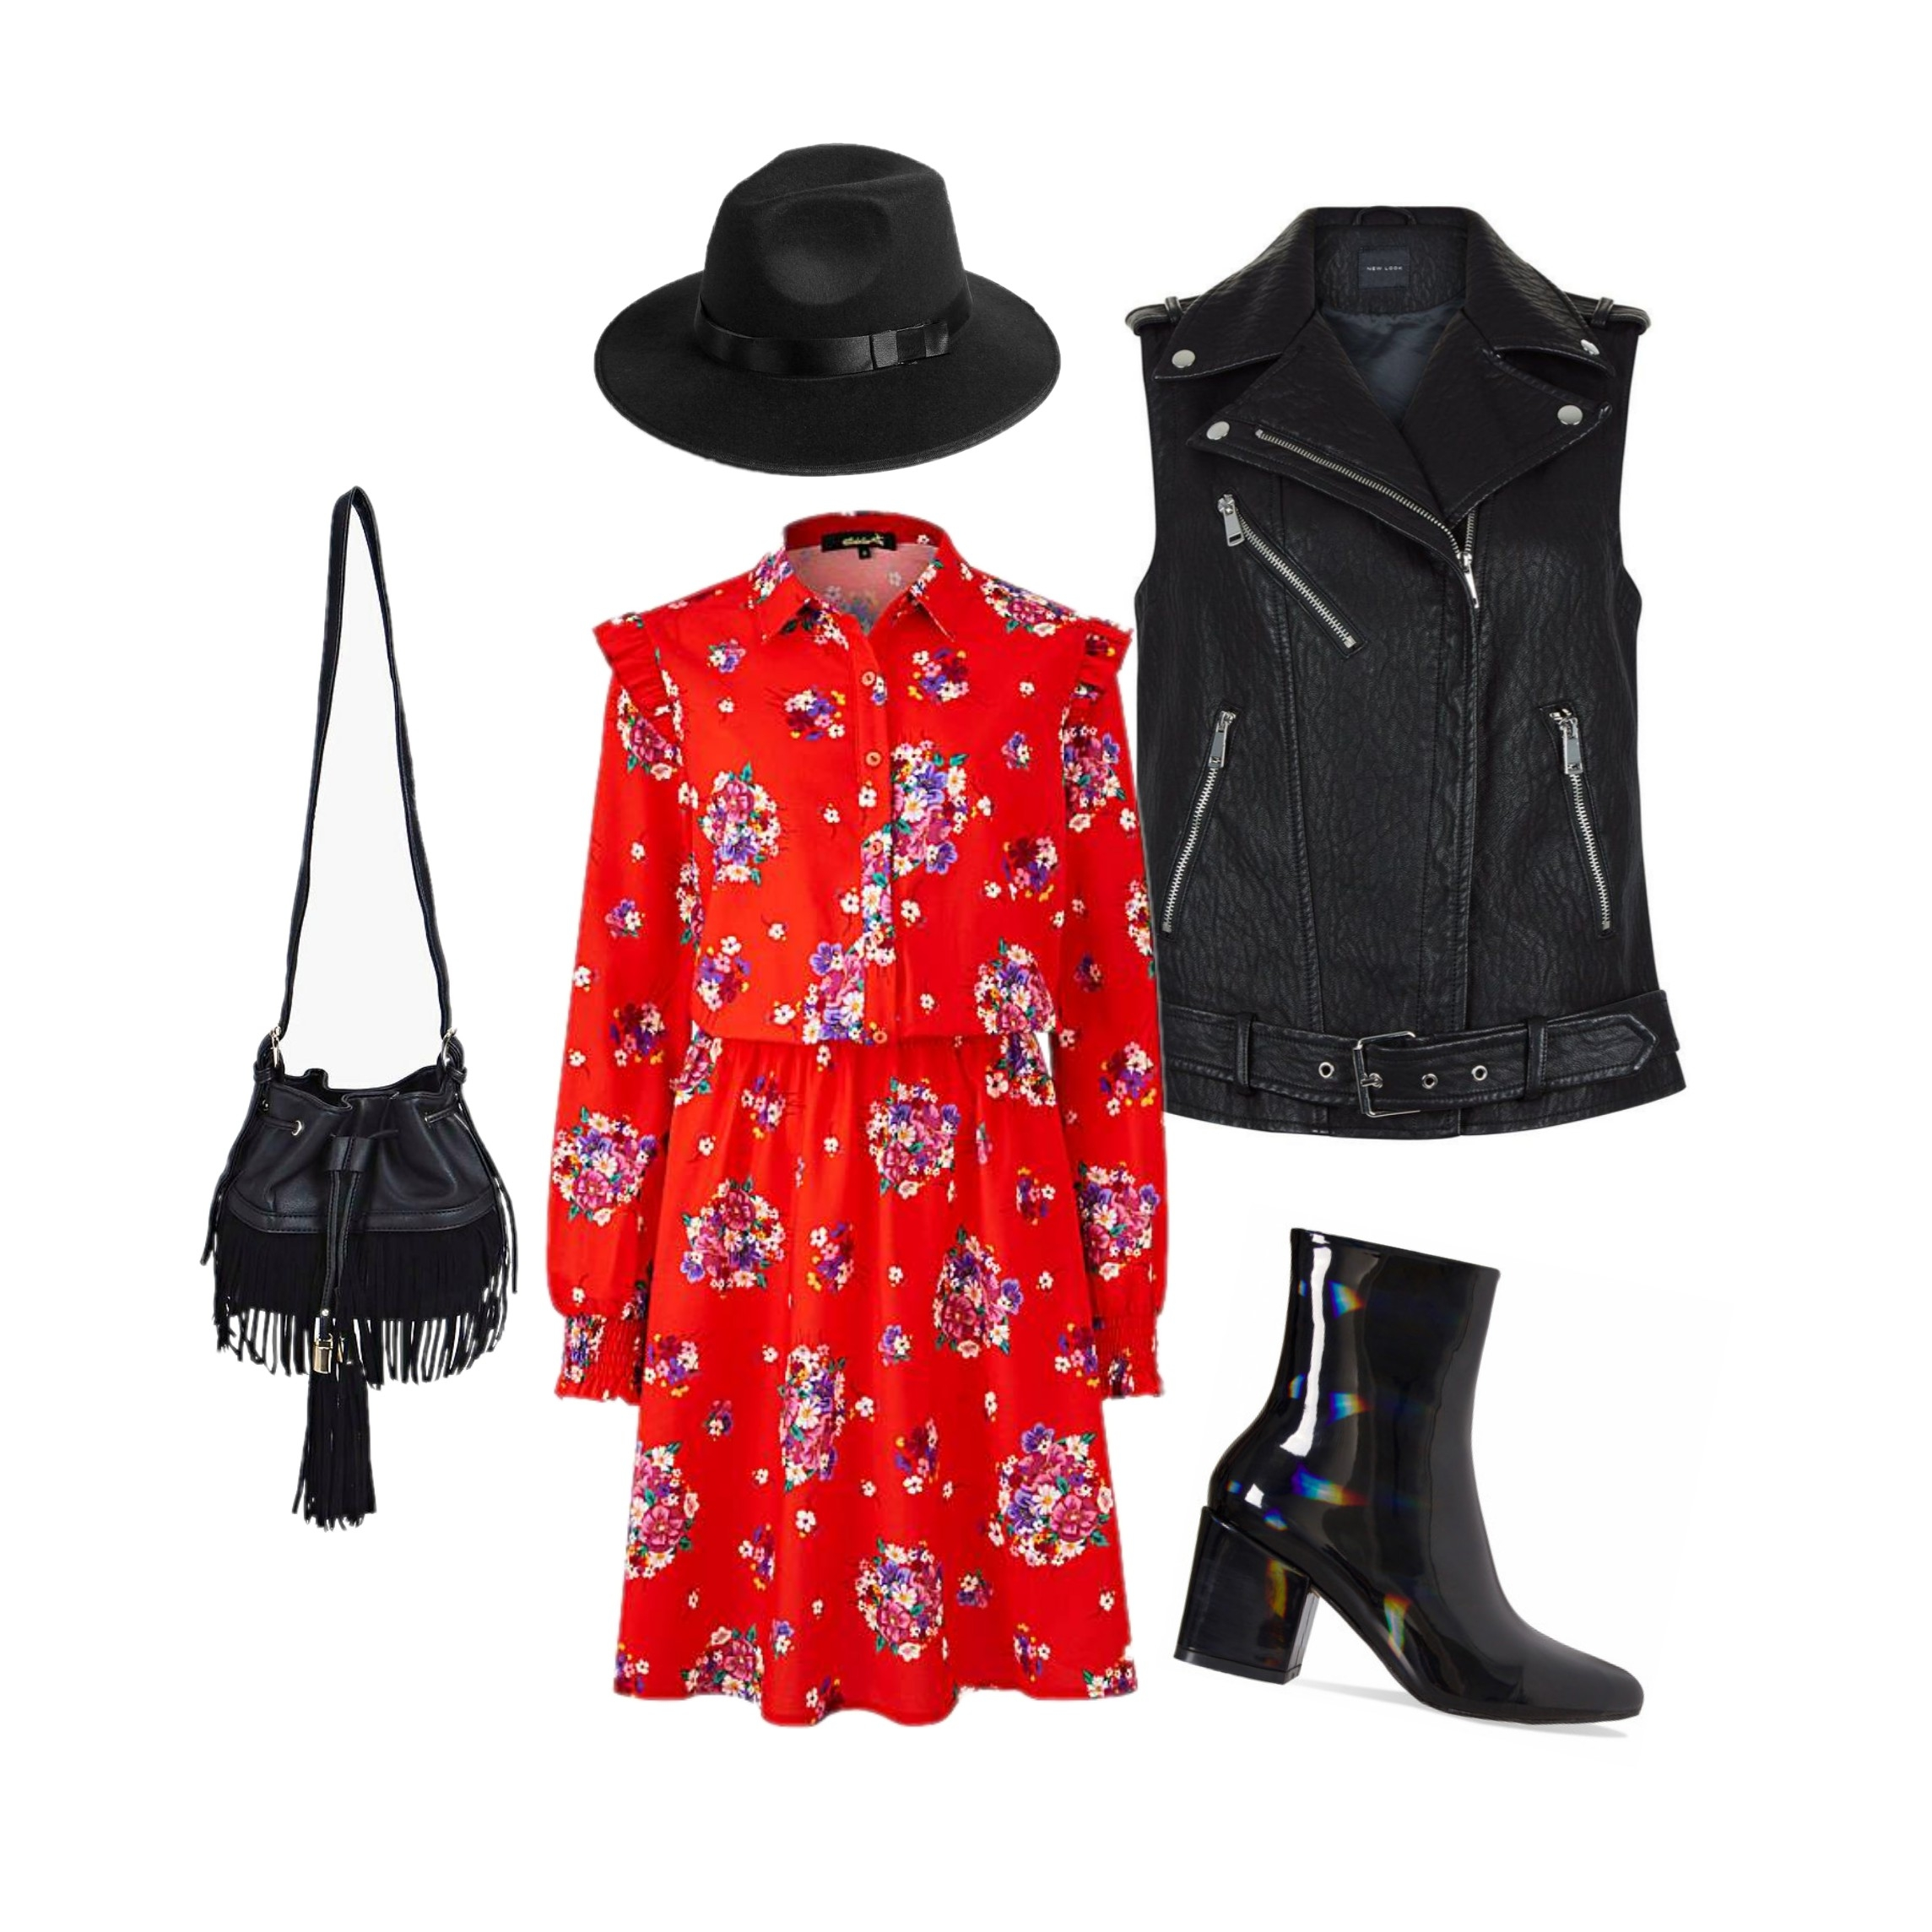 Concert gig festival outfit